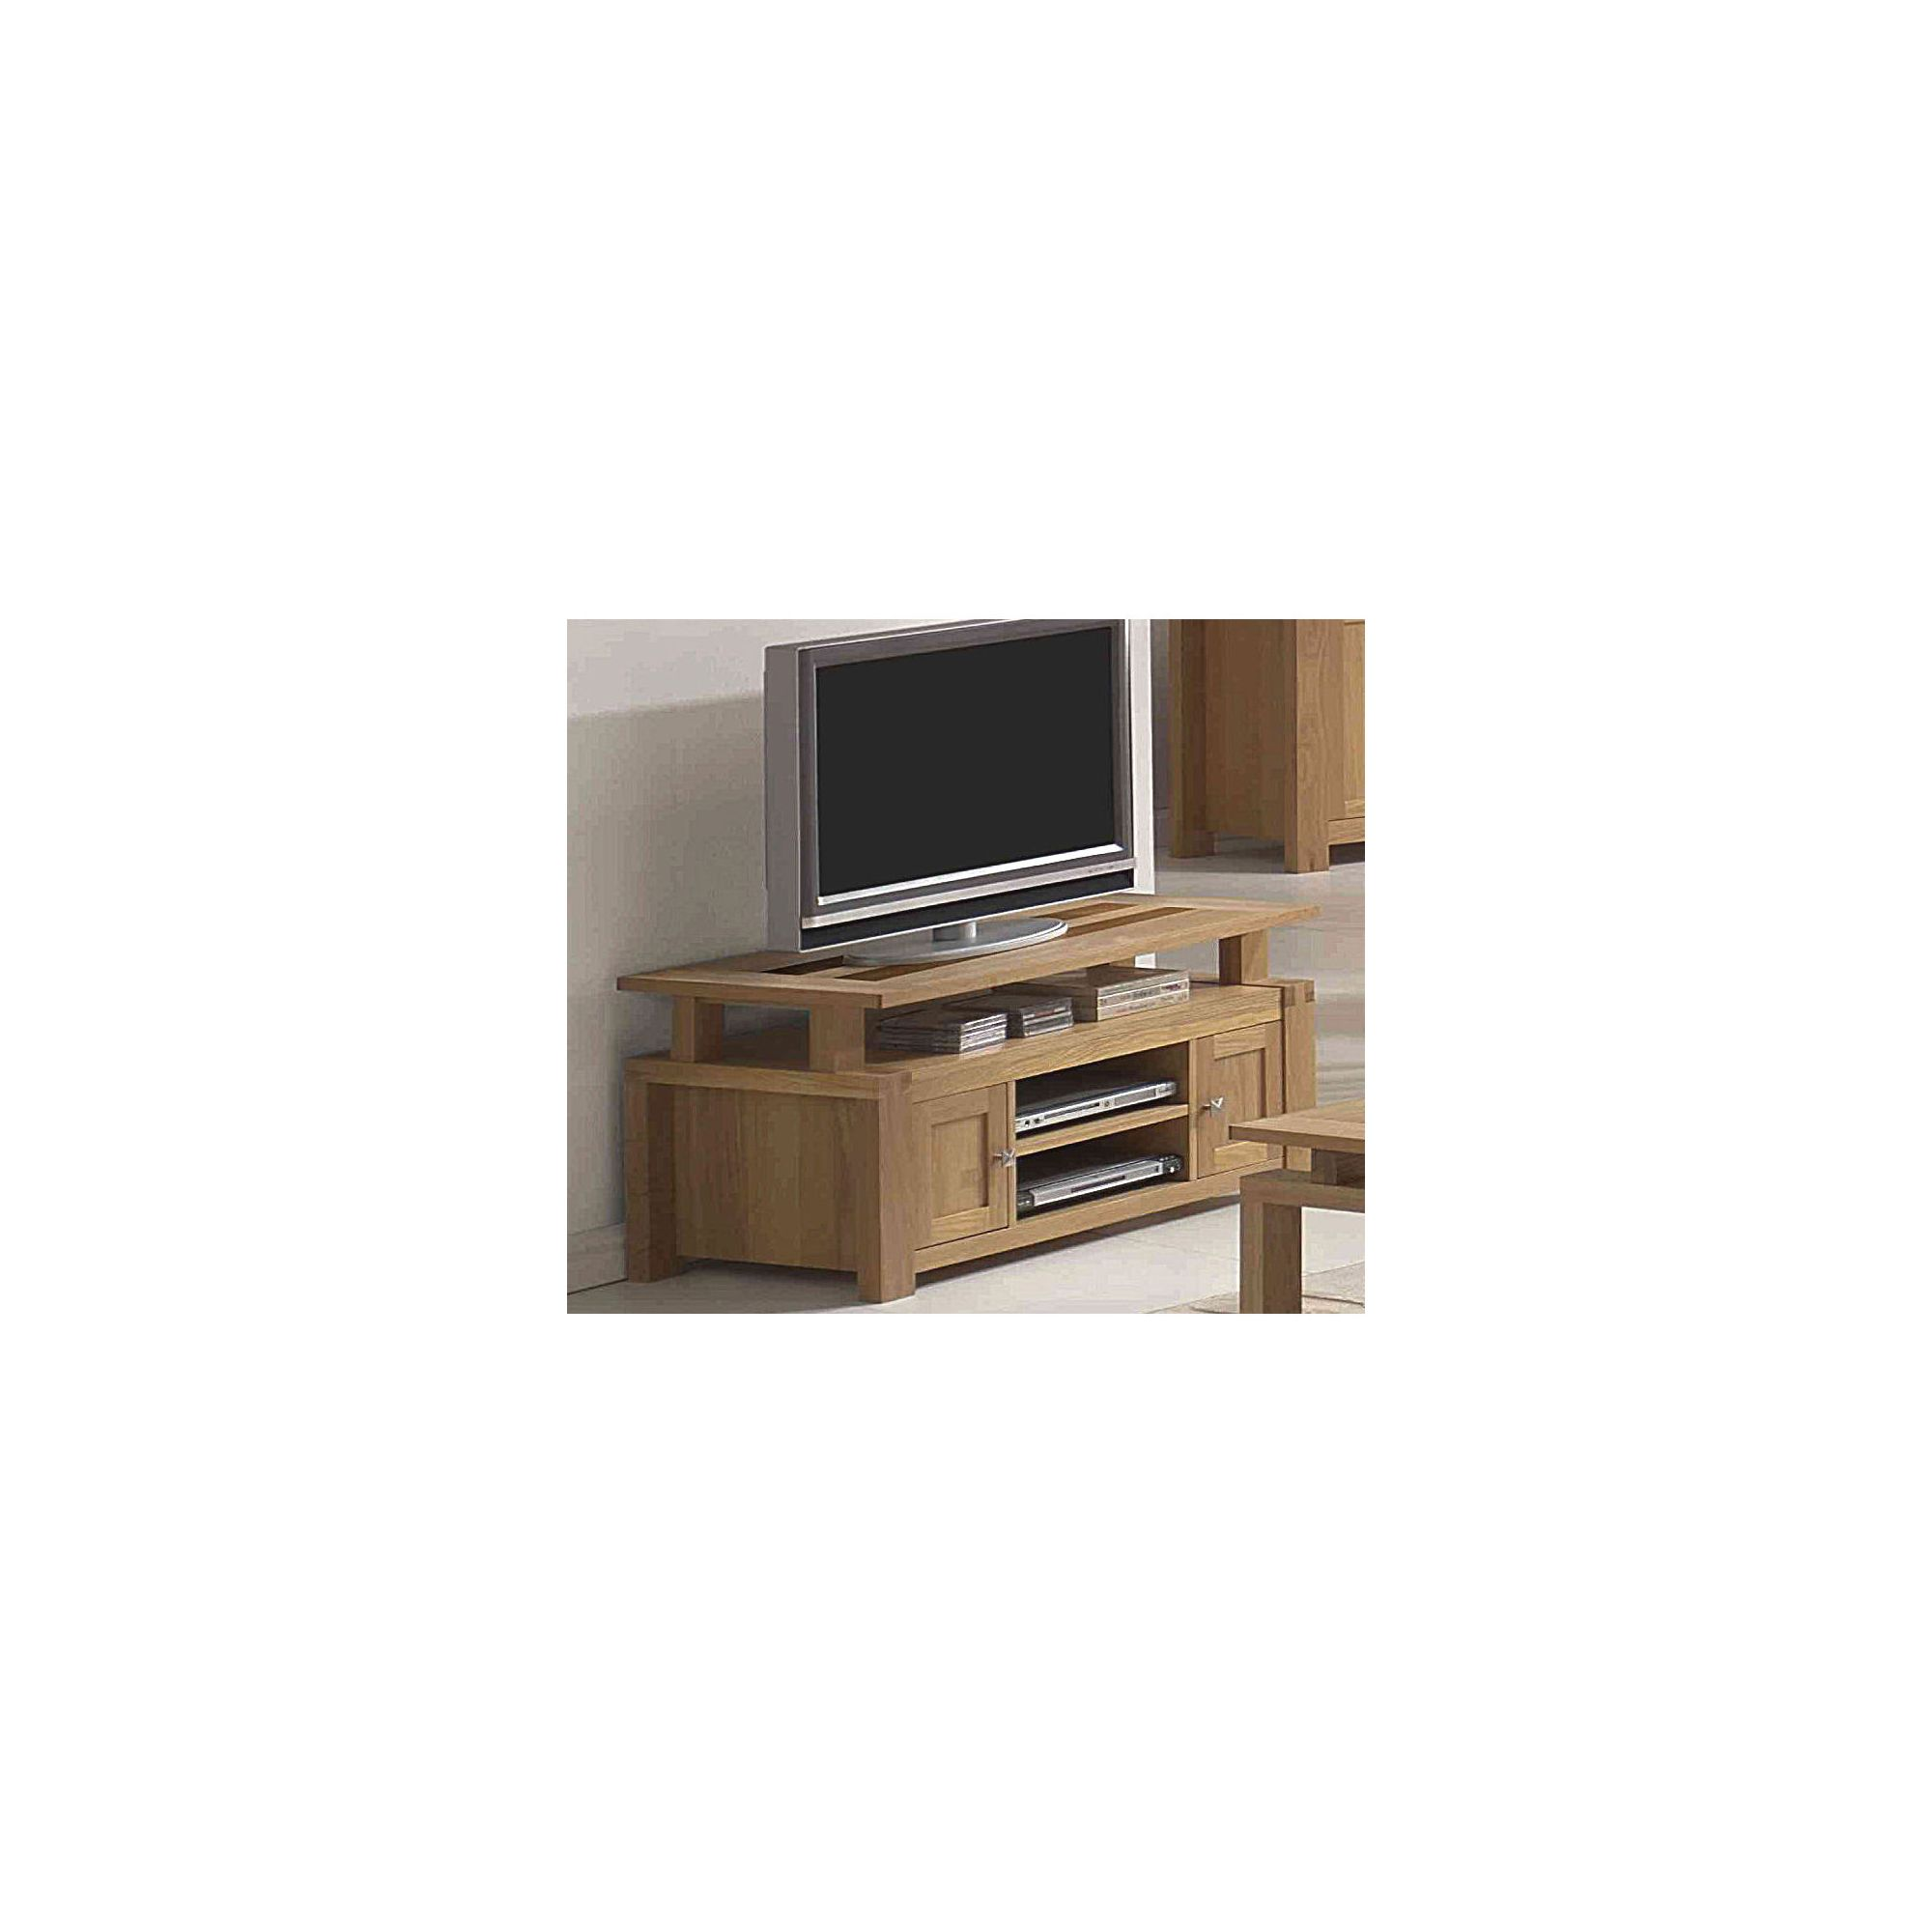 Heartlands Ravenna TV Cabinet at Tesco Direct